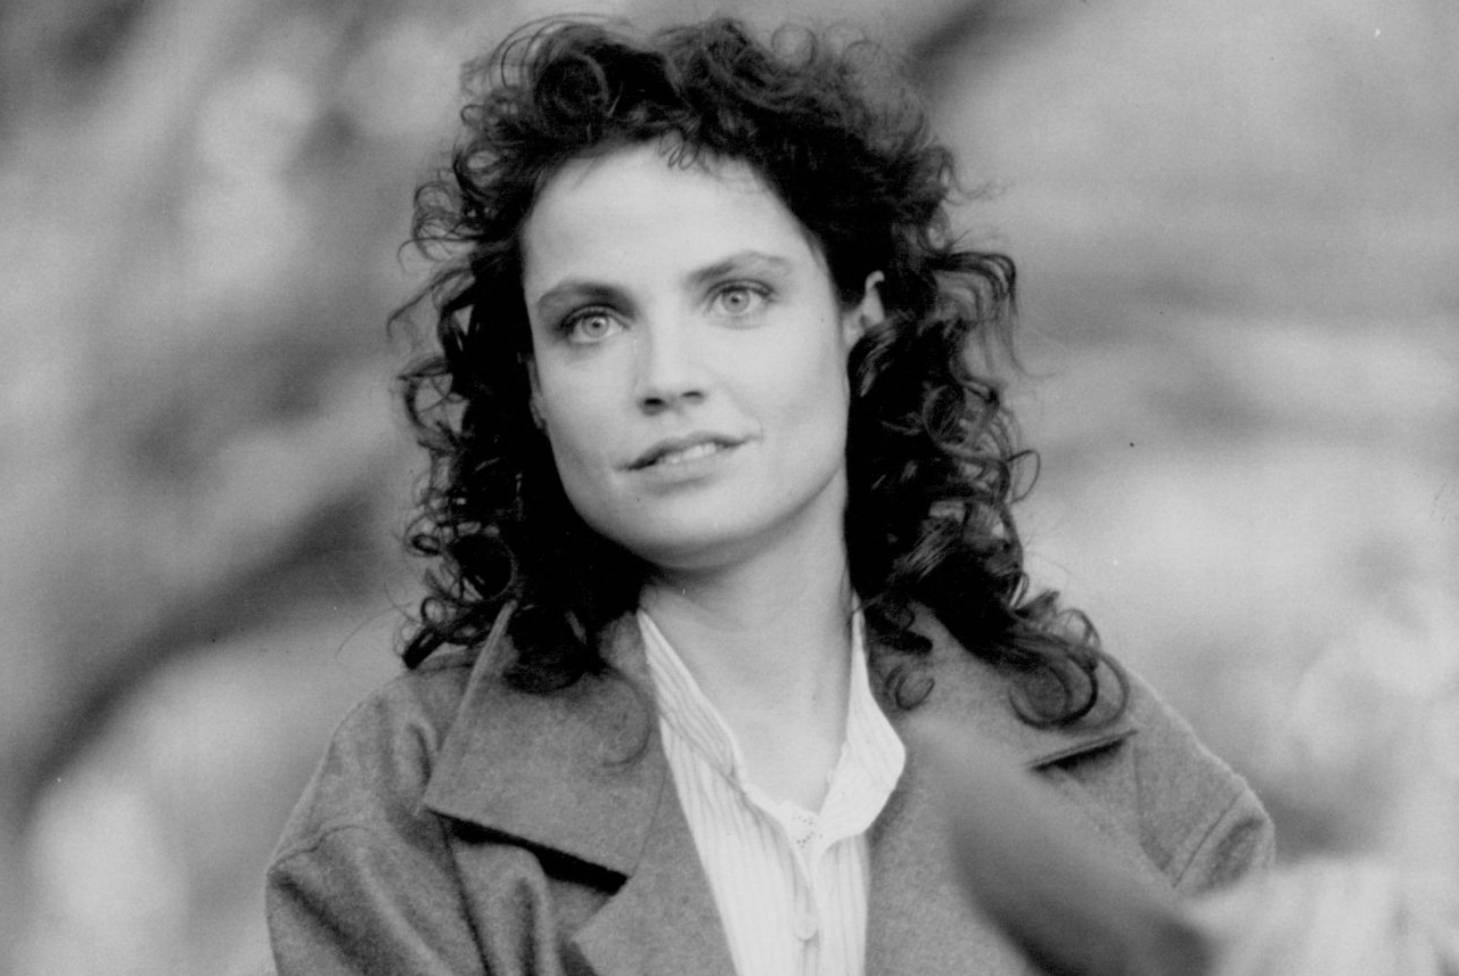 Discussion on this topic: Julie Warner, sigrid-thornton/